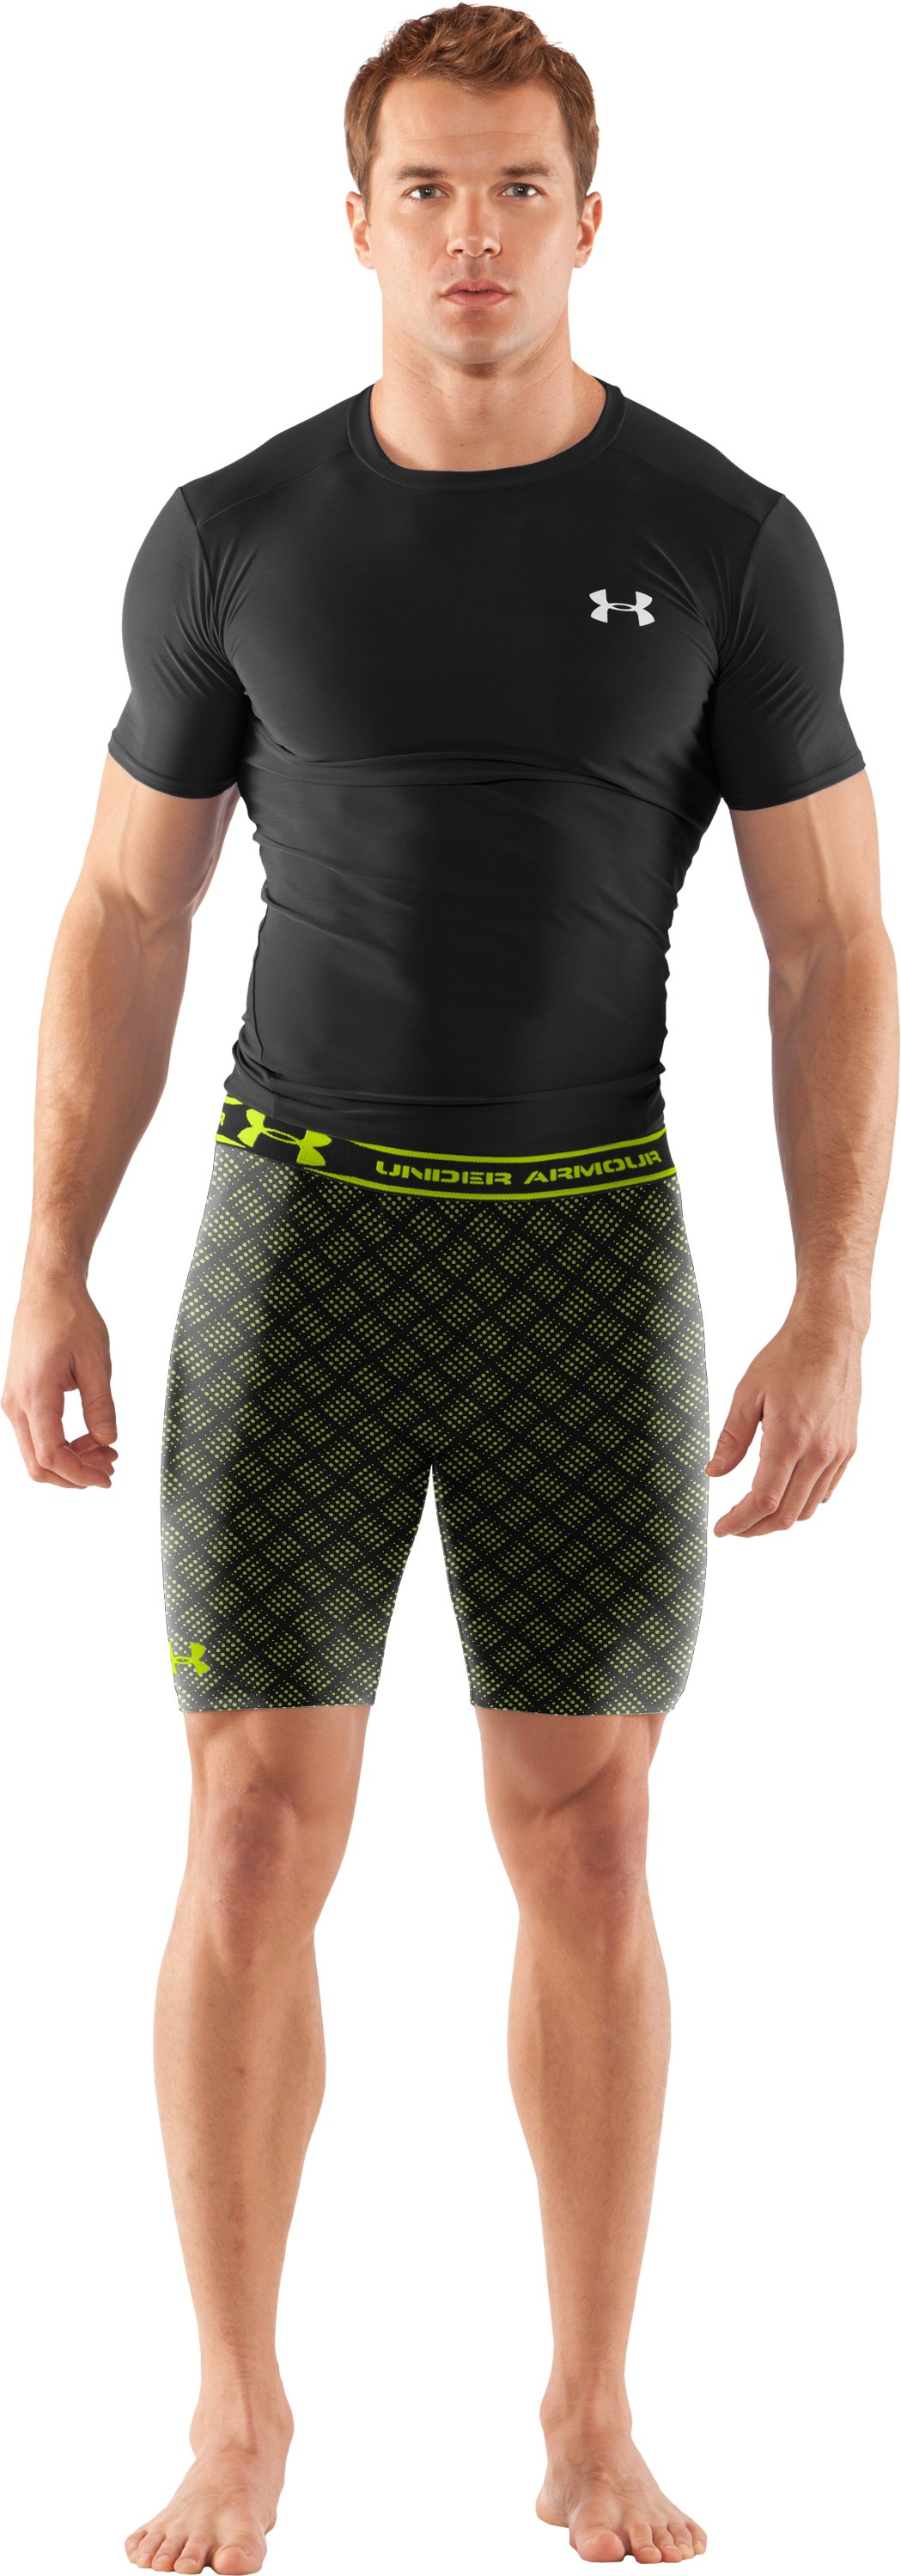 "Men's HeatGear® Compression Printed 7"" Shorts, Black"